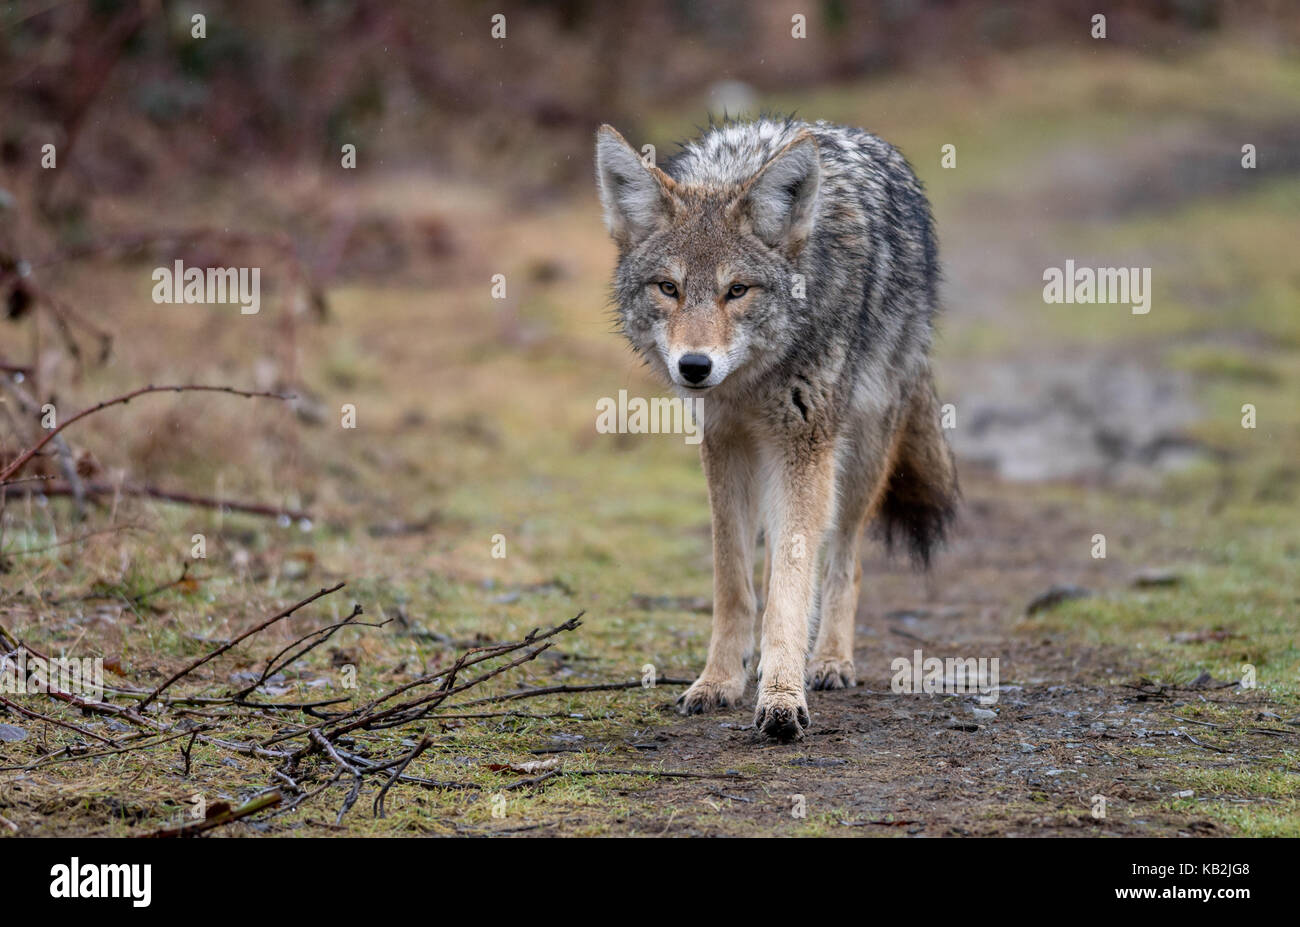 Coyote in British Columbia, Canada - Stock Image